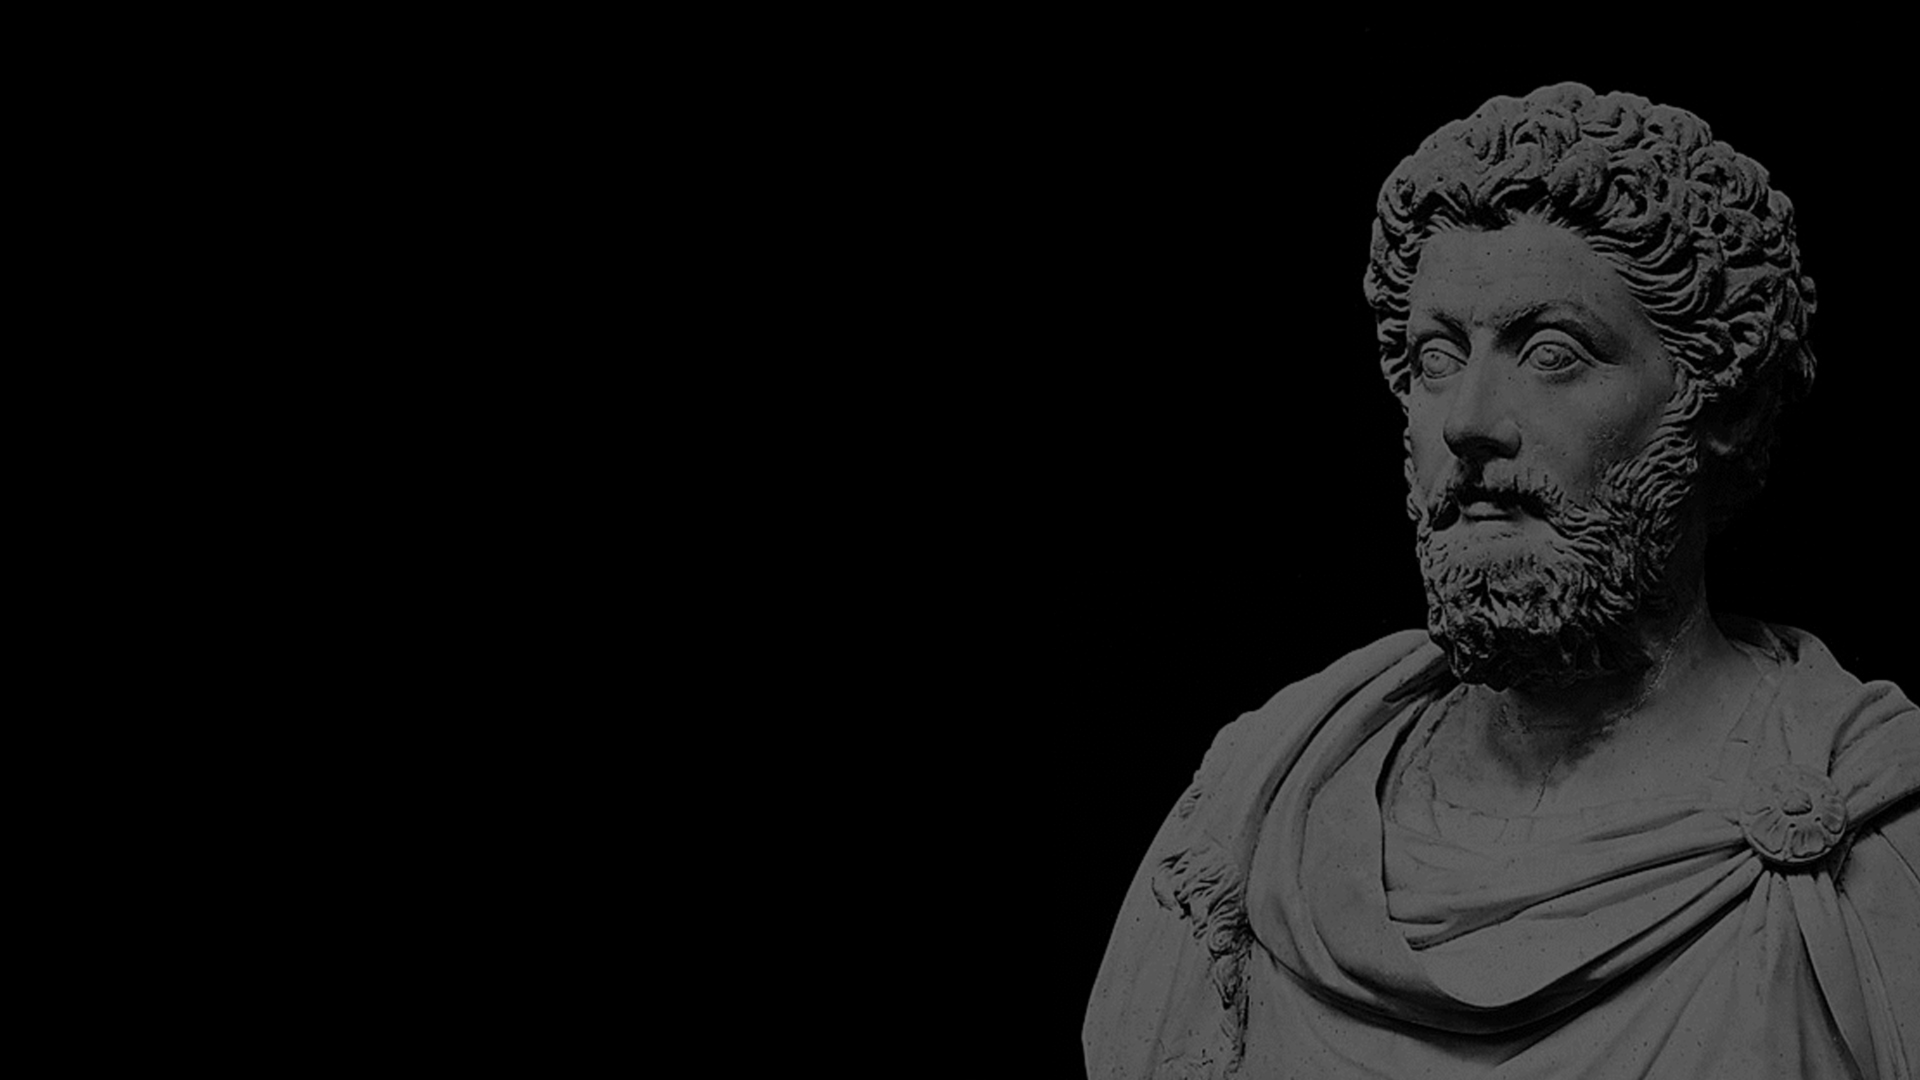 Image source: https://www.reddit.com/r/Stoicism/comments/549y0w/desktop_wallpaper_of_marcus_aurelius_1920x1080/